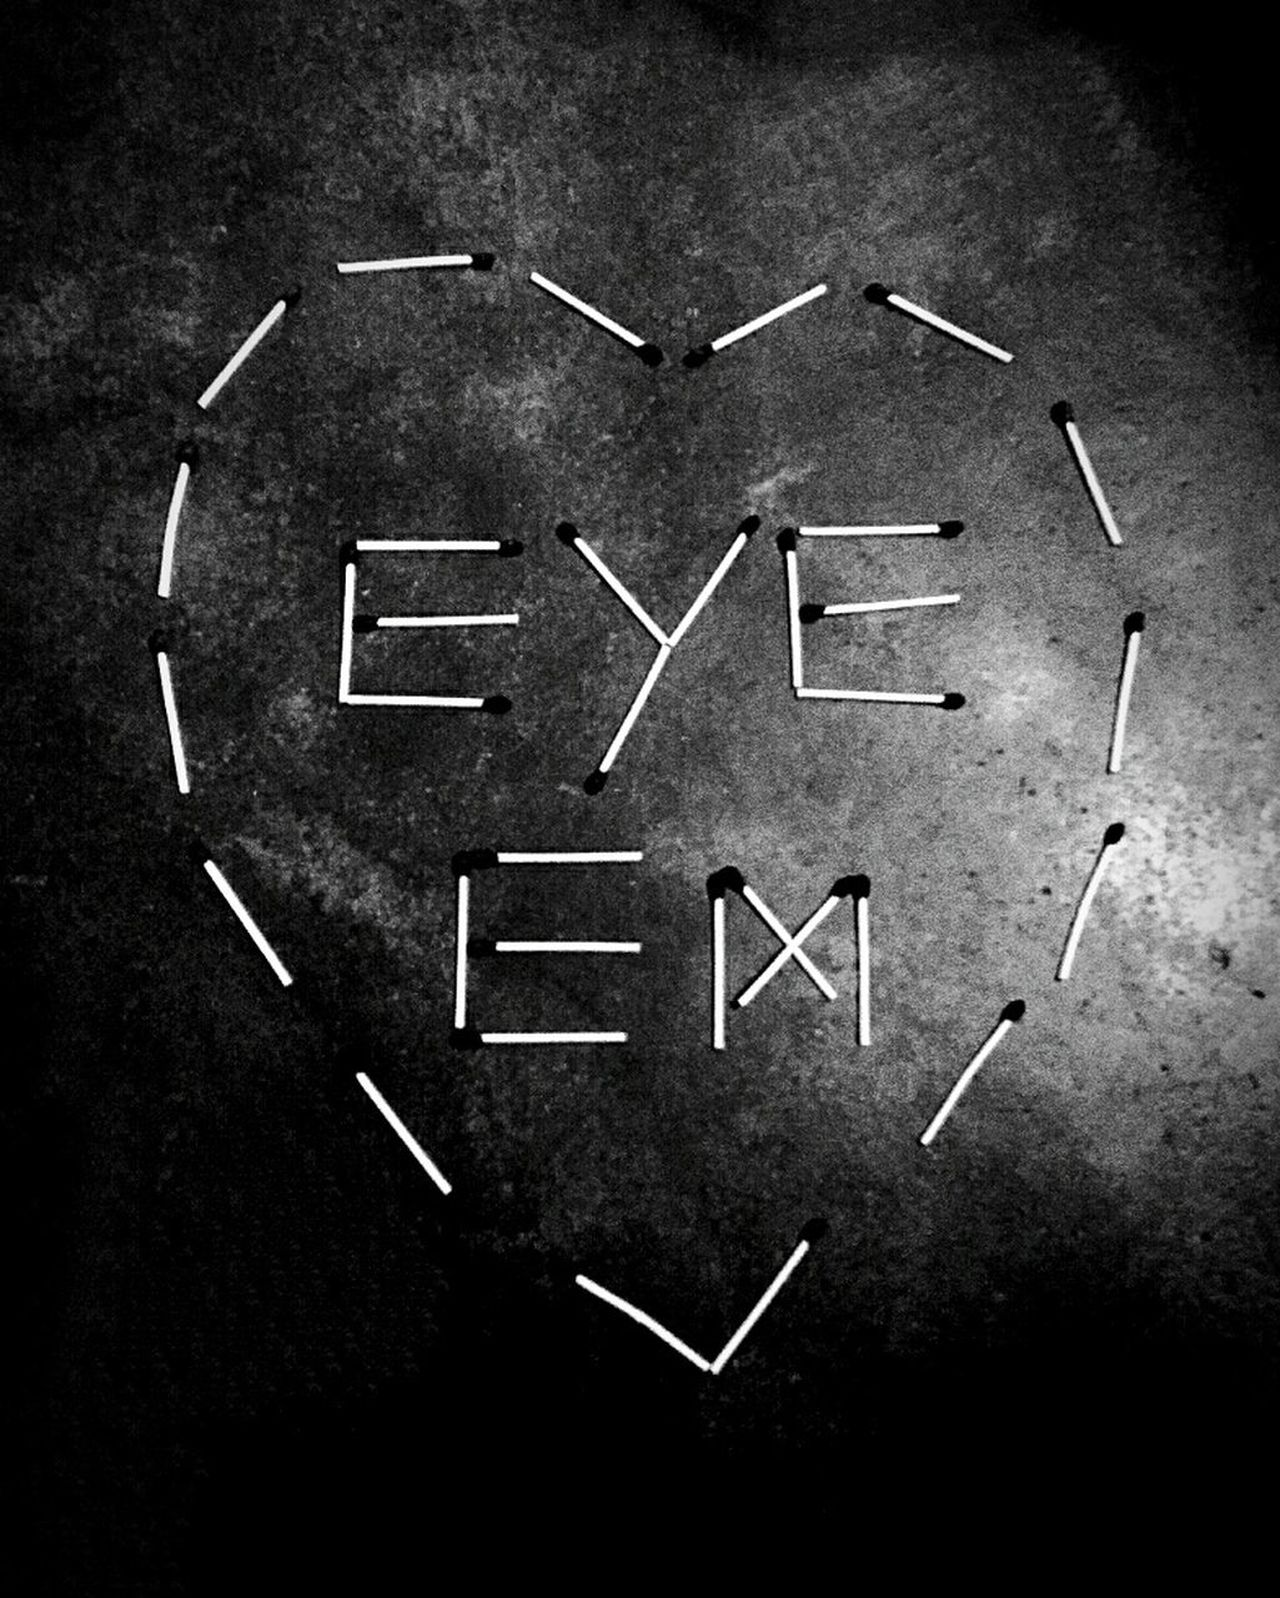 Black And White Photography EyeEm Lover Love ♥ Simple Photography Match Stick Attraction Art Is Everywhere Romantic Chalk Drawing Blackboard  No People Studio Shot Handwriting  Education Black Color Indoors  Time Black Background Day Stone EyeEmNewHere Secondeyeemphoto IndoorPhotography EyeEmNewHere